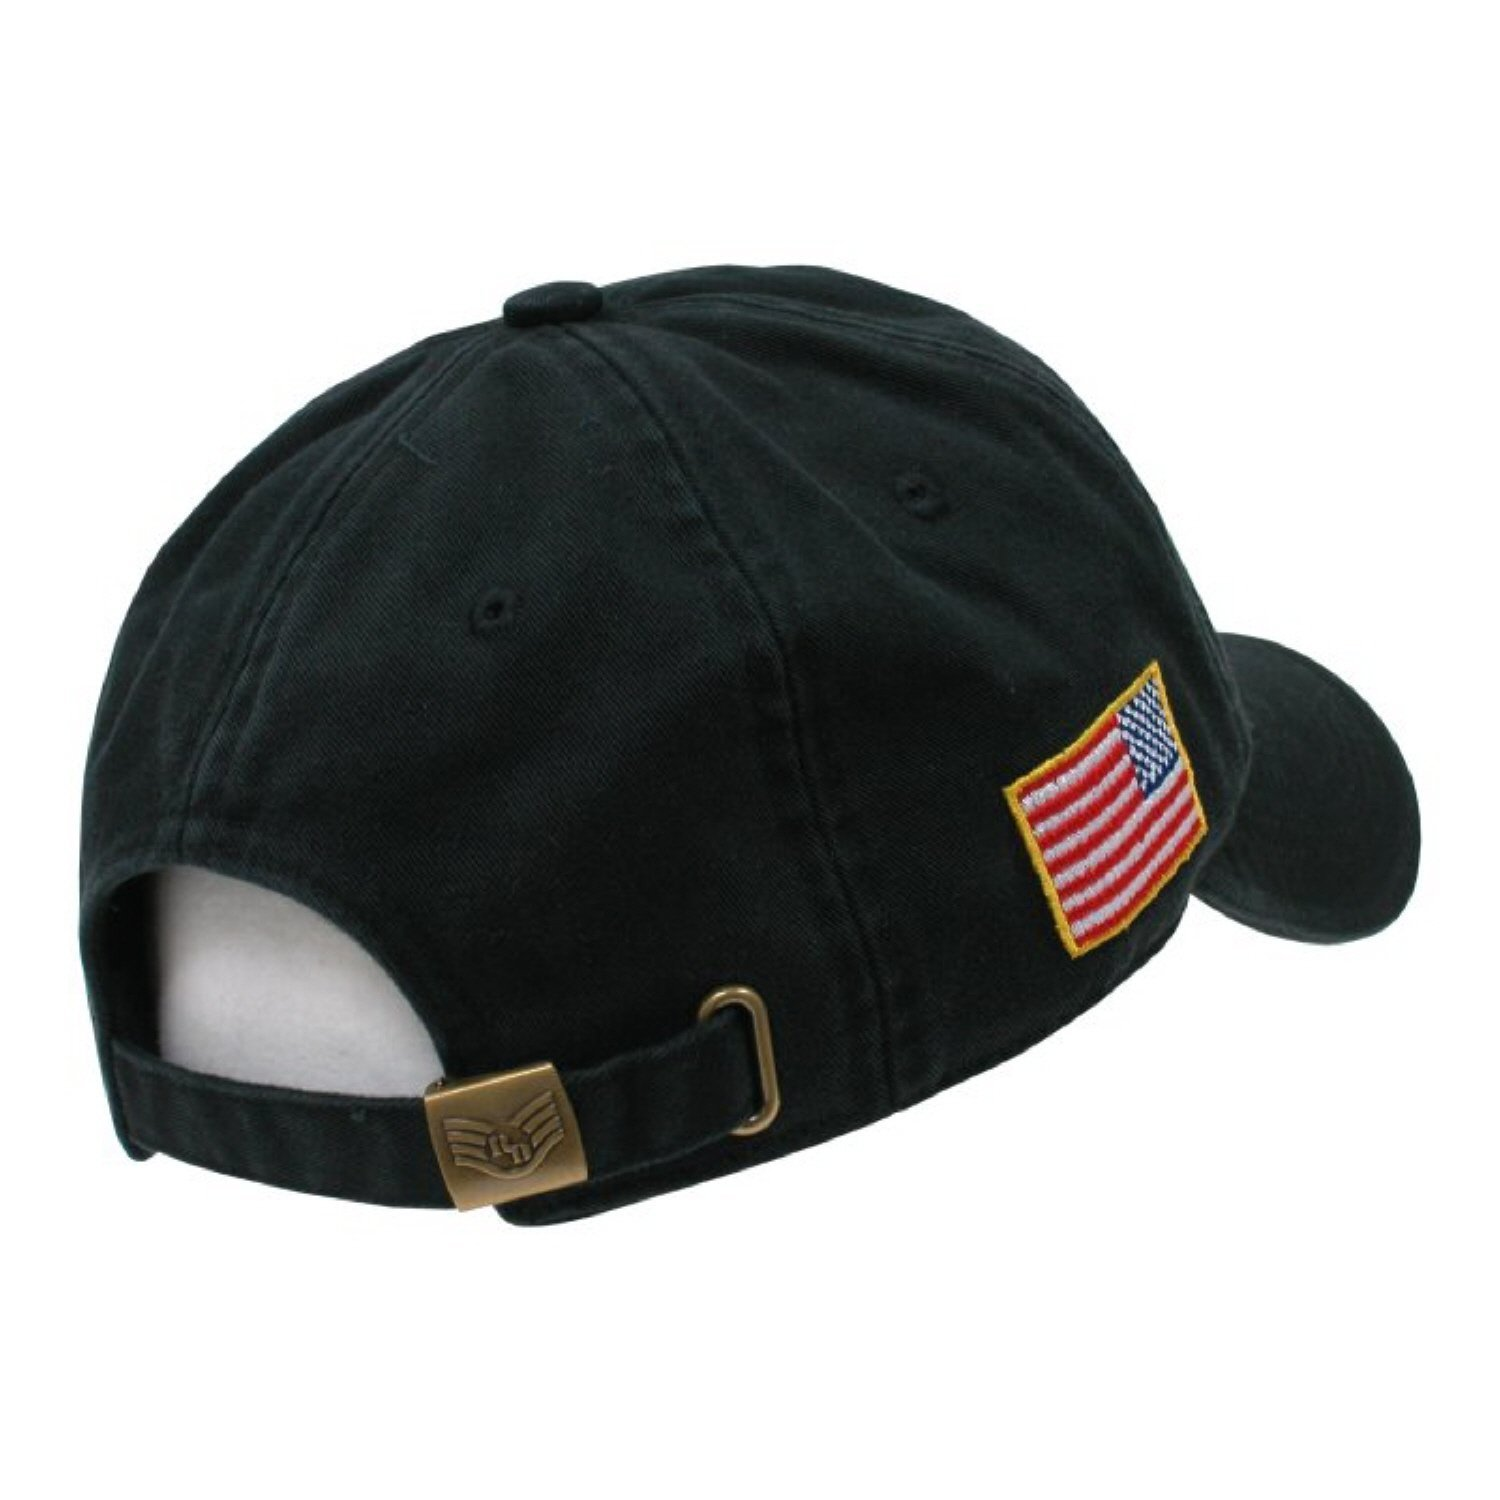 b35bd91506a Amazon.com  Black Police Officer Polo Style Adjustable Baseball Cap Hat US  Flag  Clothing